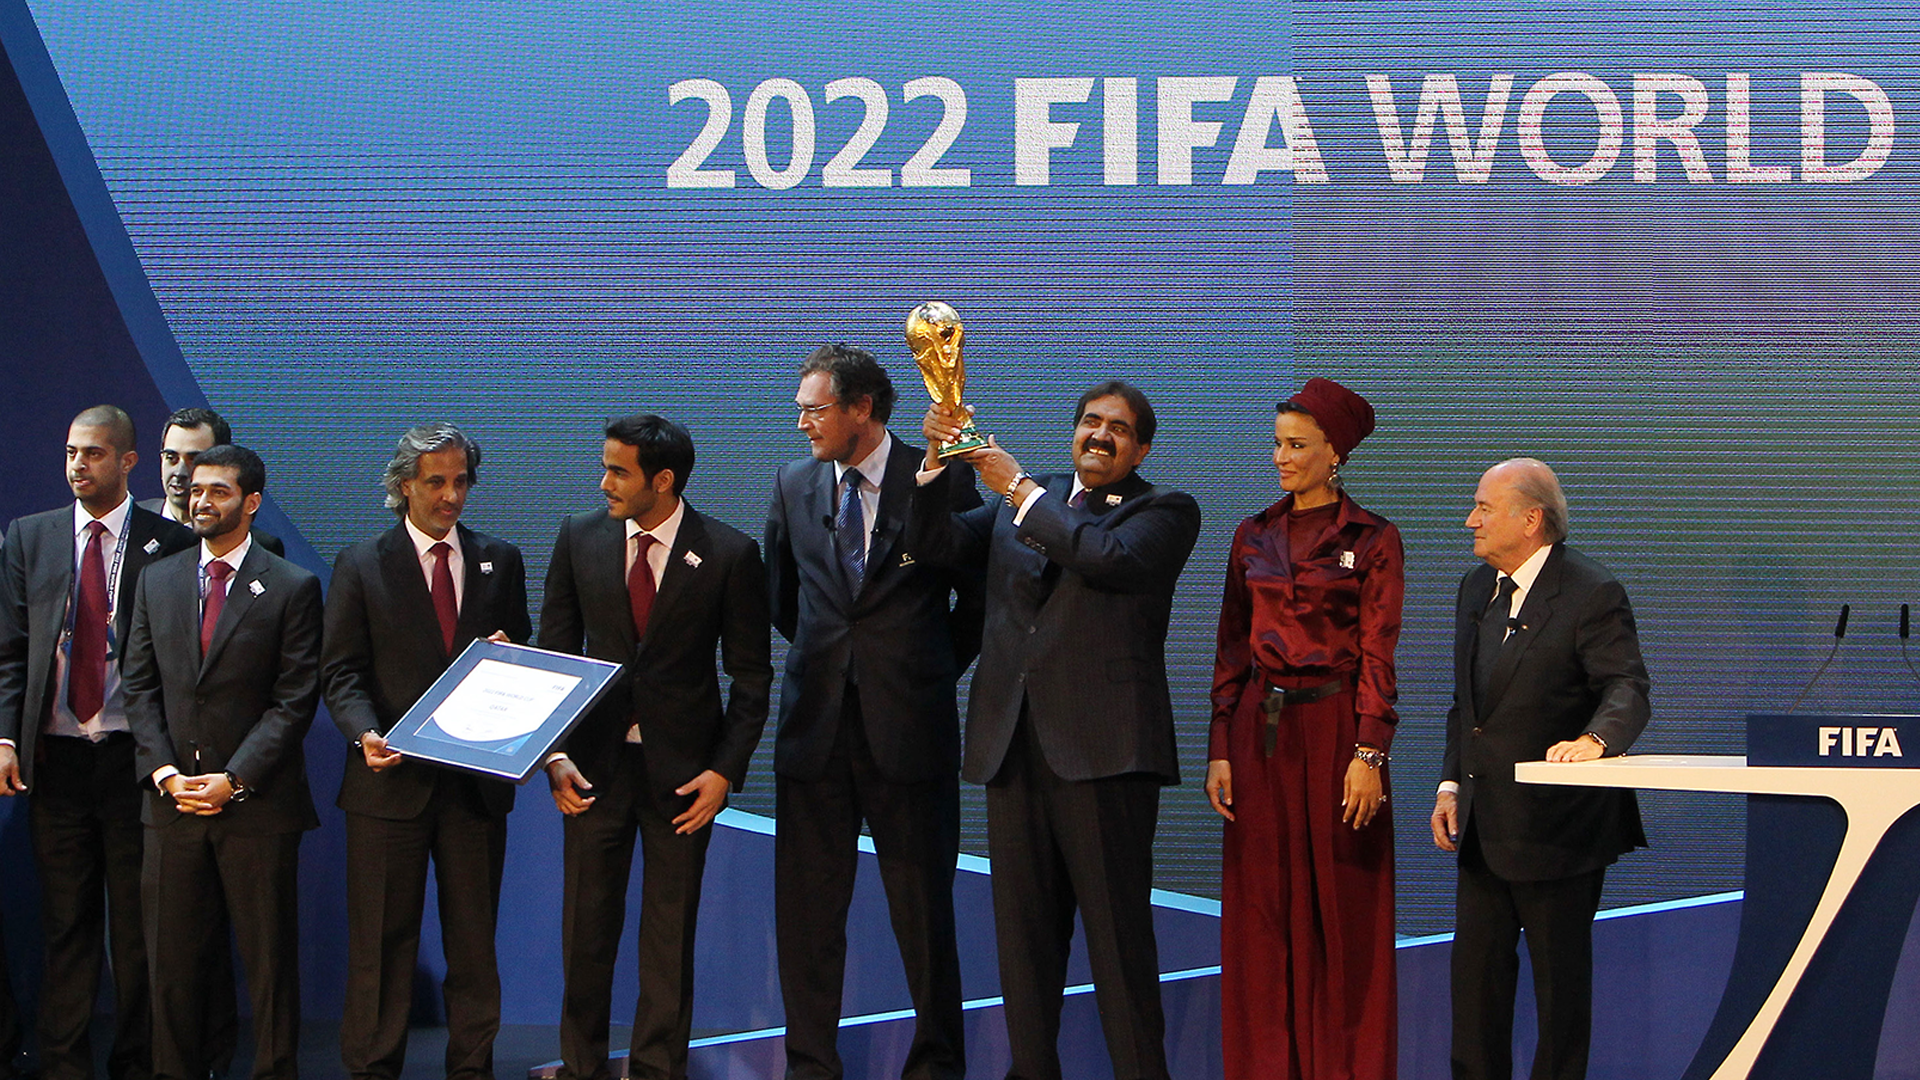 World Cup 2022: Will Qatar be stripped of hosting the finals by FIFA?